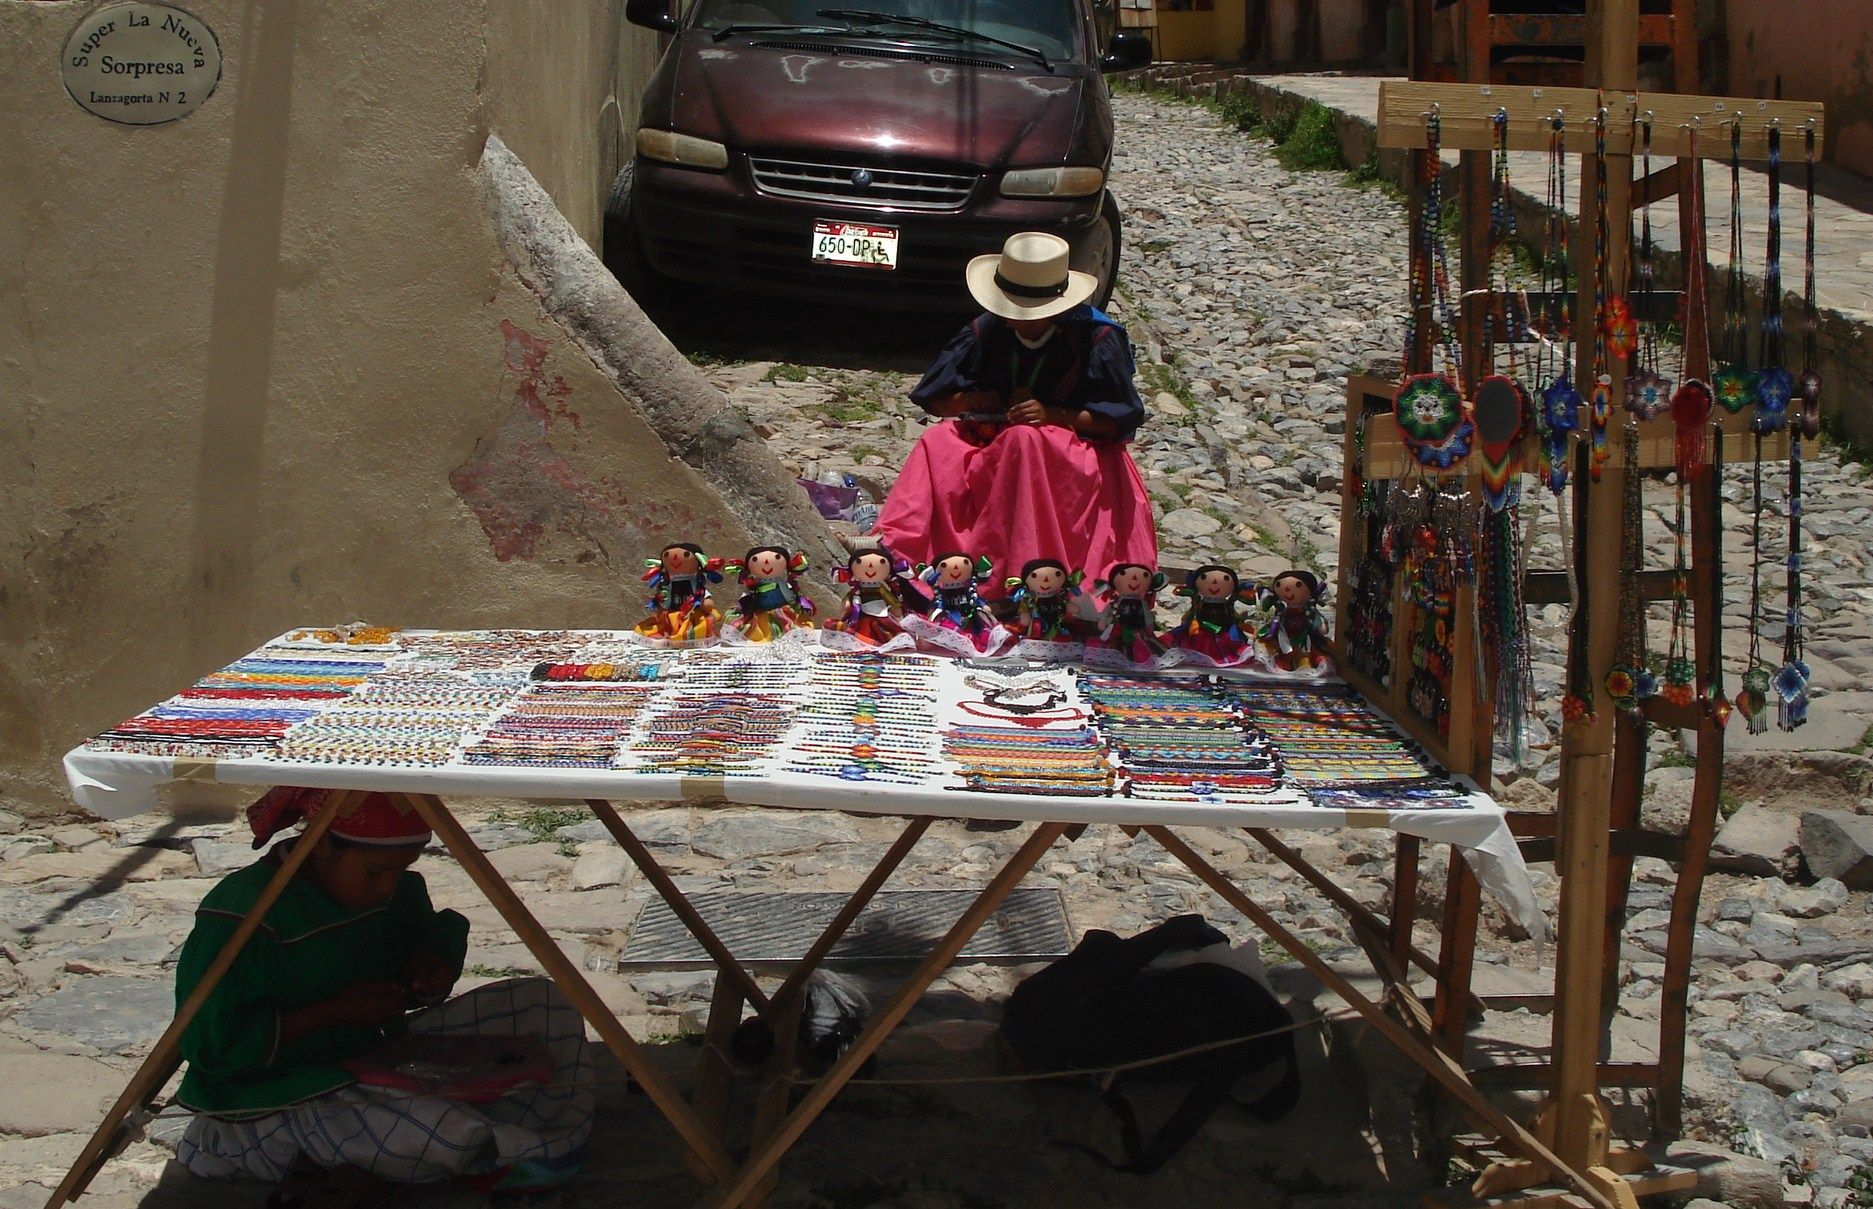 Artisan an vendor in Real de Catorce